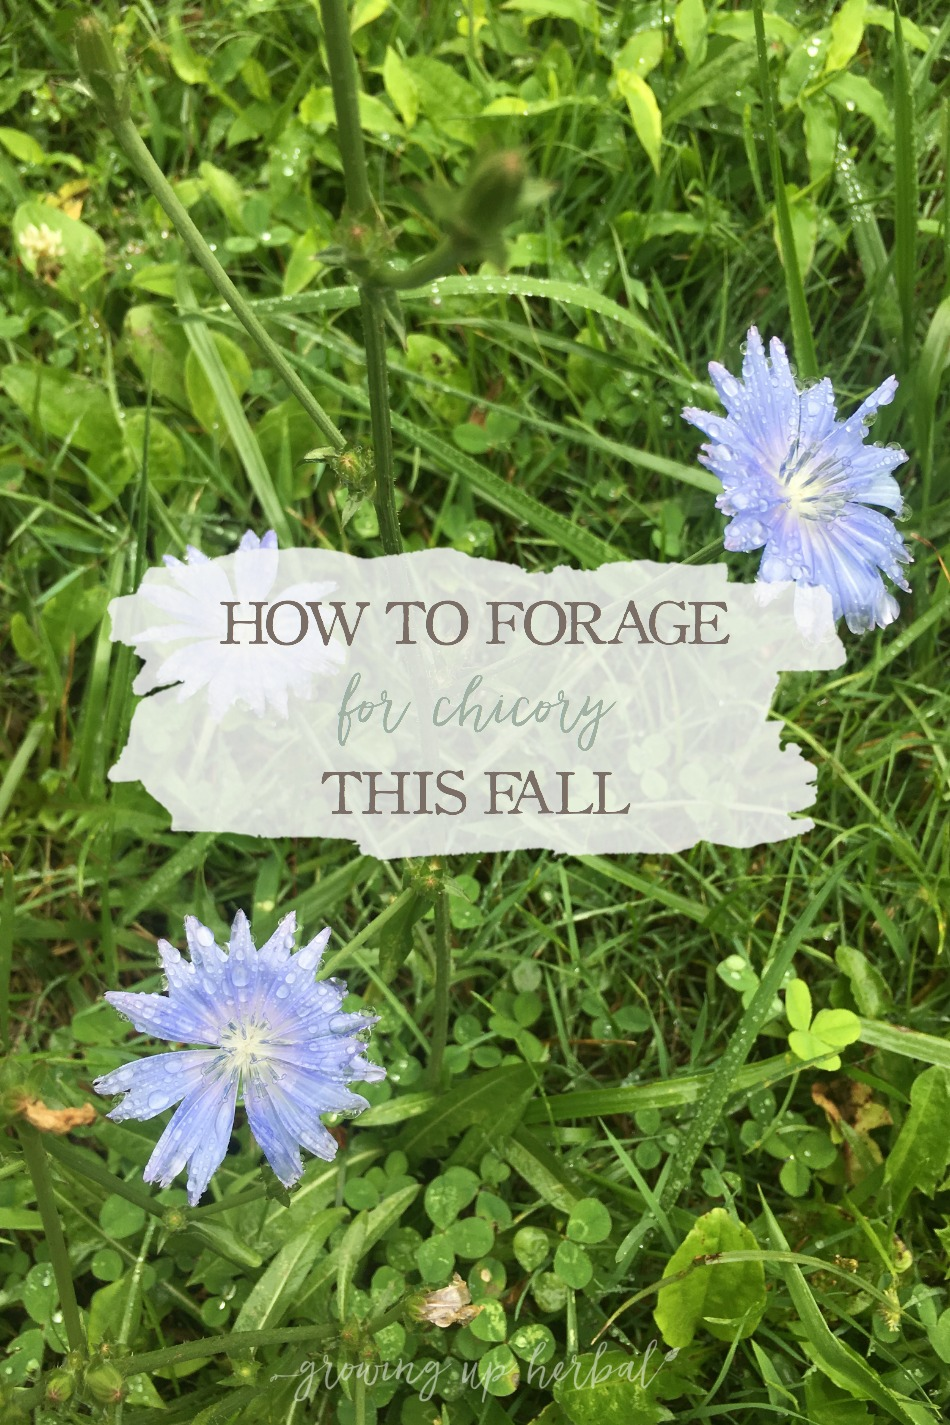 How To Forage For Chicory This Fall | Growing Up Herbal | Learn how to identify and forage for chicory this fall! Chicory can be a great coffee substitute and assists the body in detoxing and blood sugar balance.